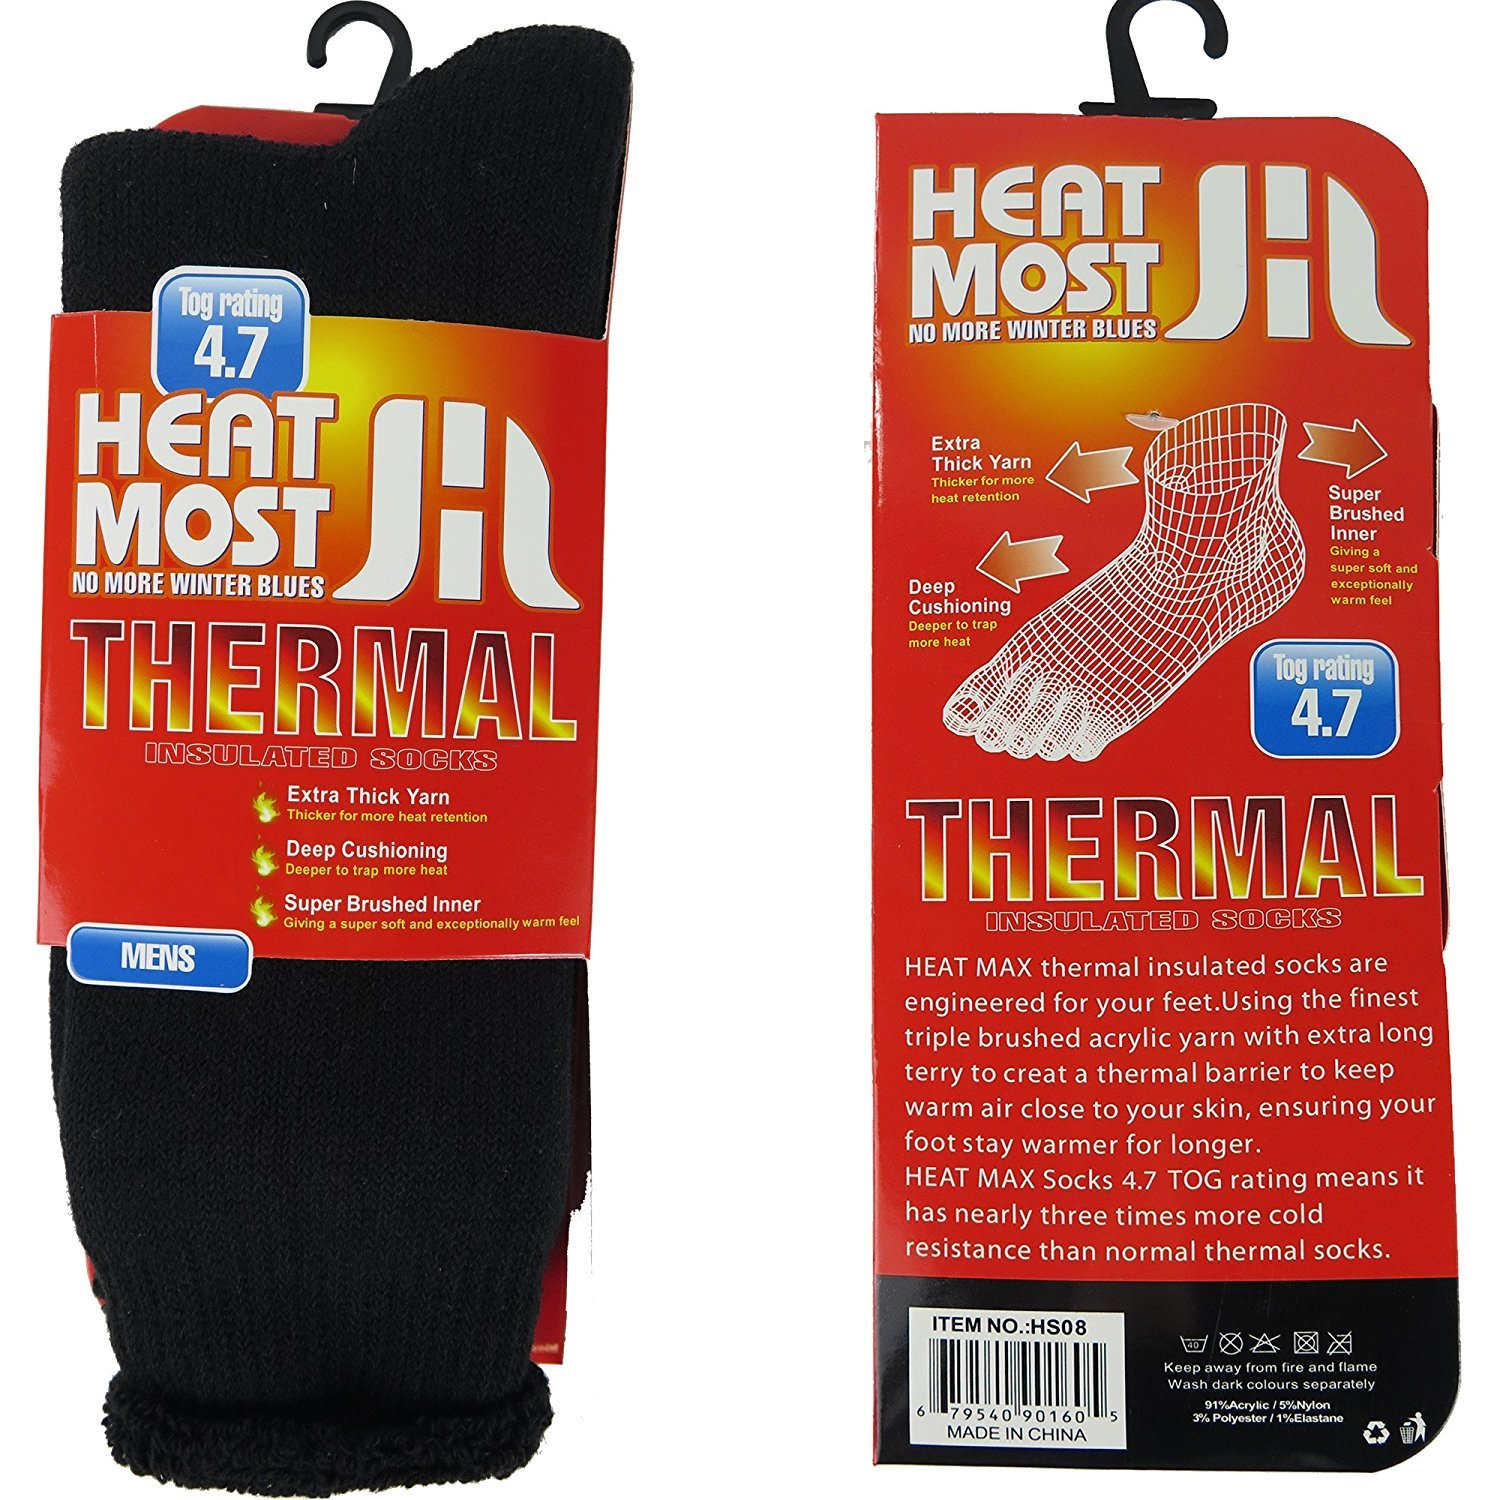 Heat Thermo Heat Max thermal insulated socks, Black, 6-12